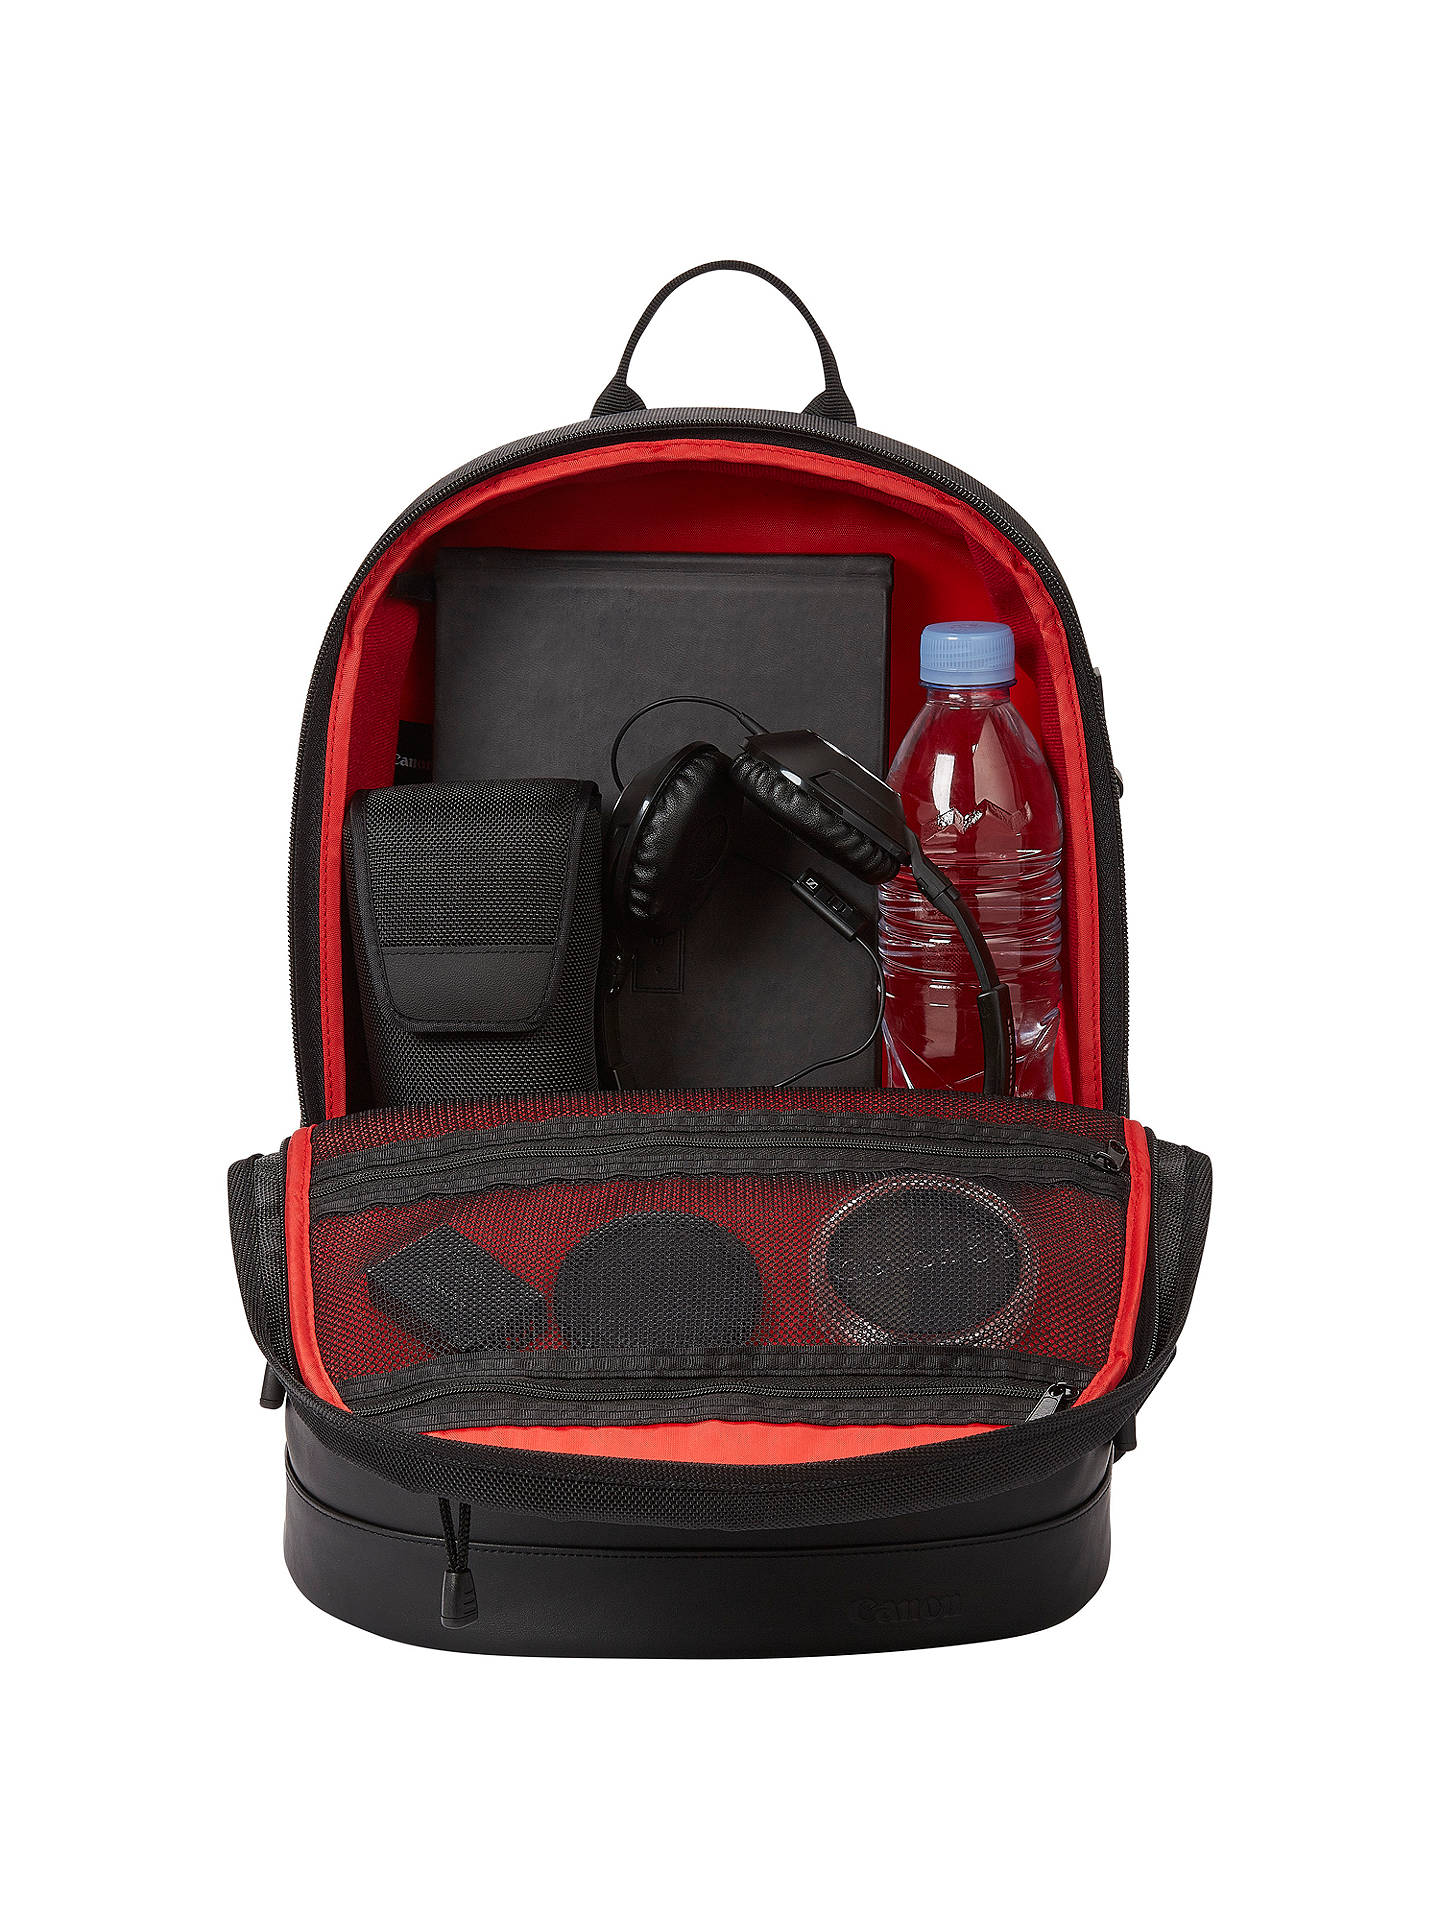 BuyCanon BP100 Camera Case Backpack Online at johnlewis.com